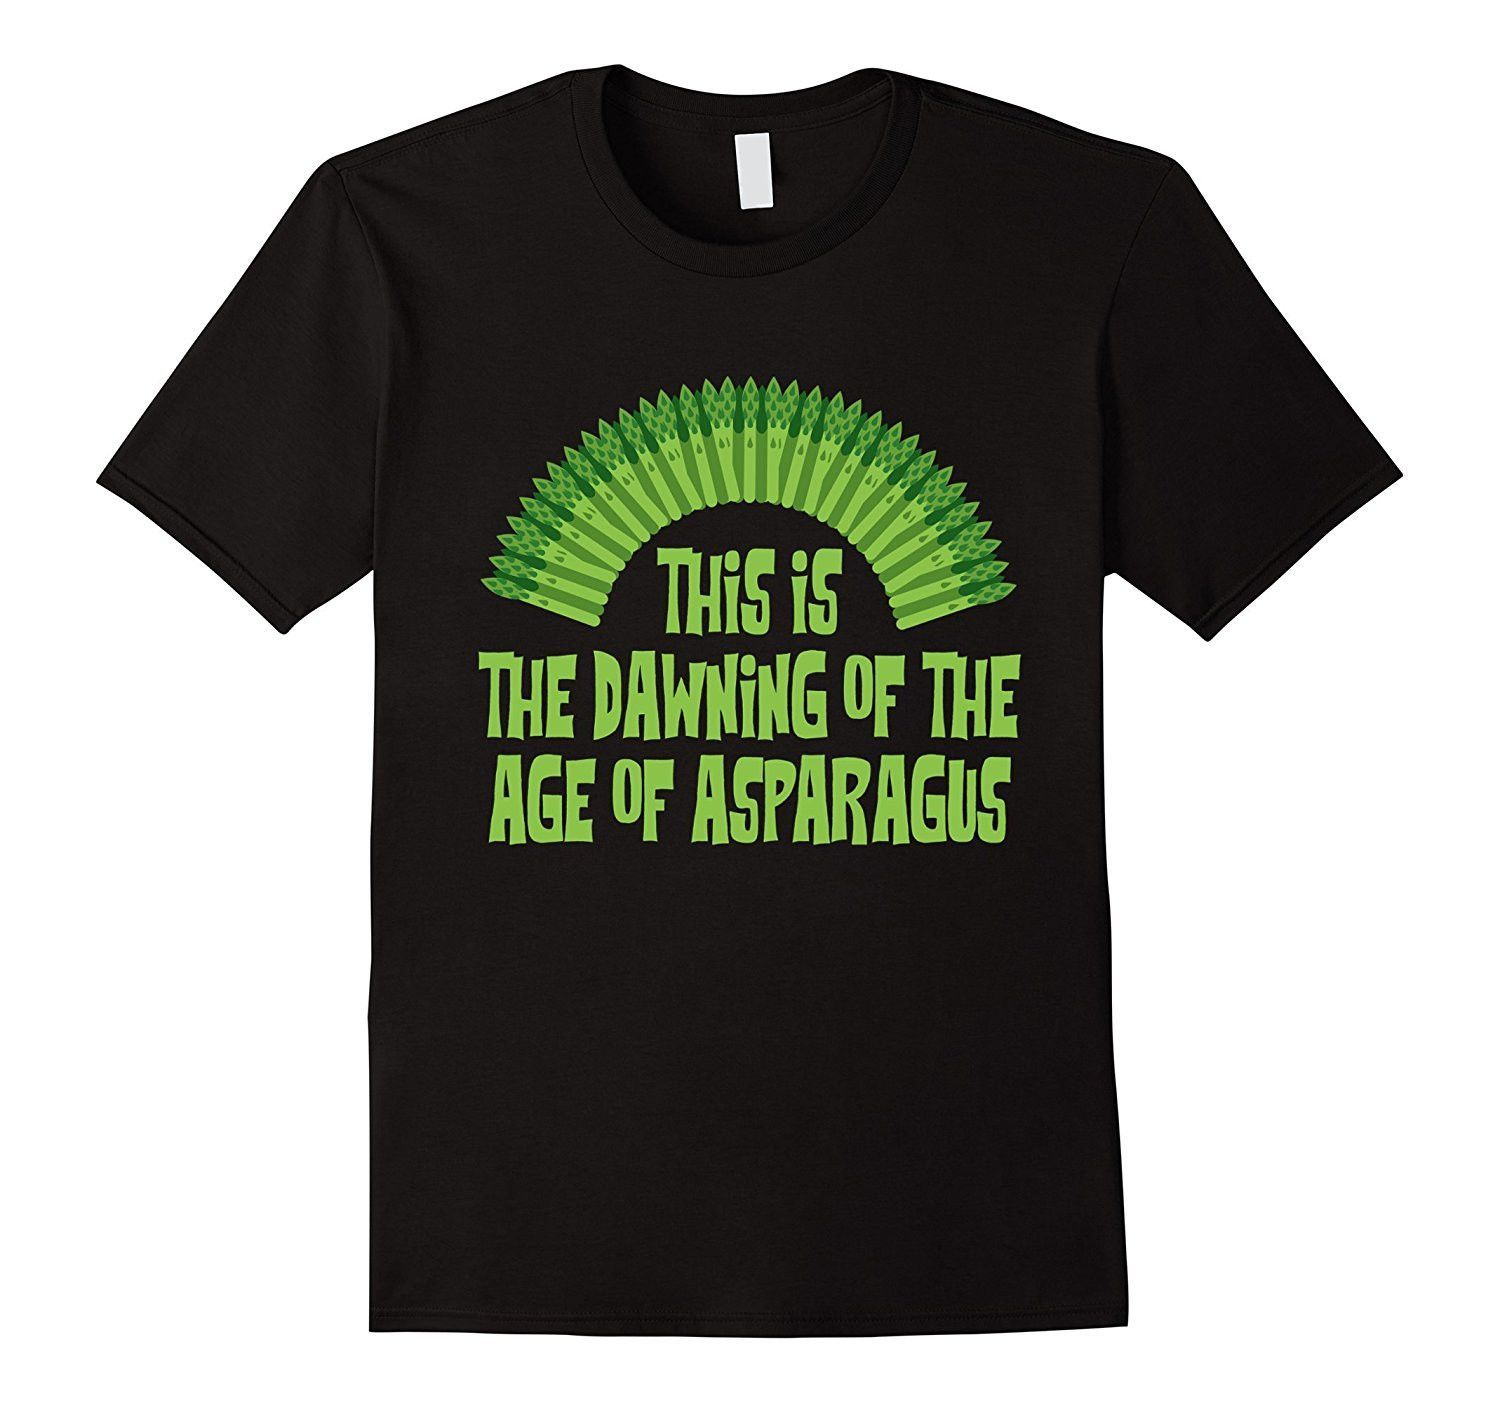 The Age Of Asparagus T-Shirt. Funny Vegan Humor Music